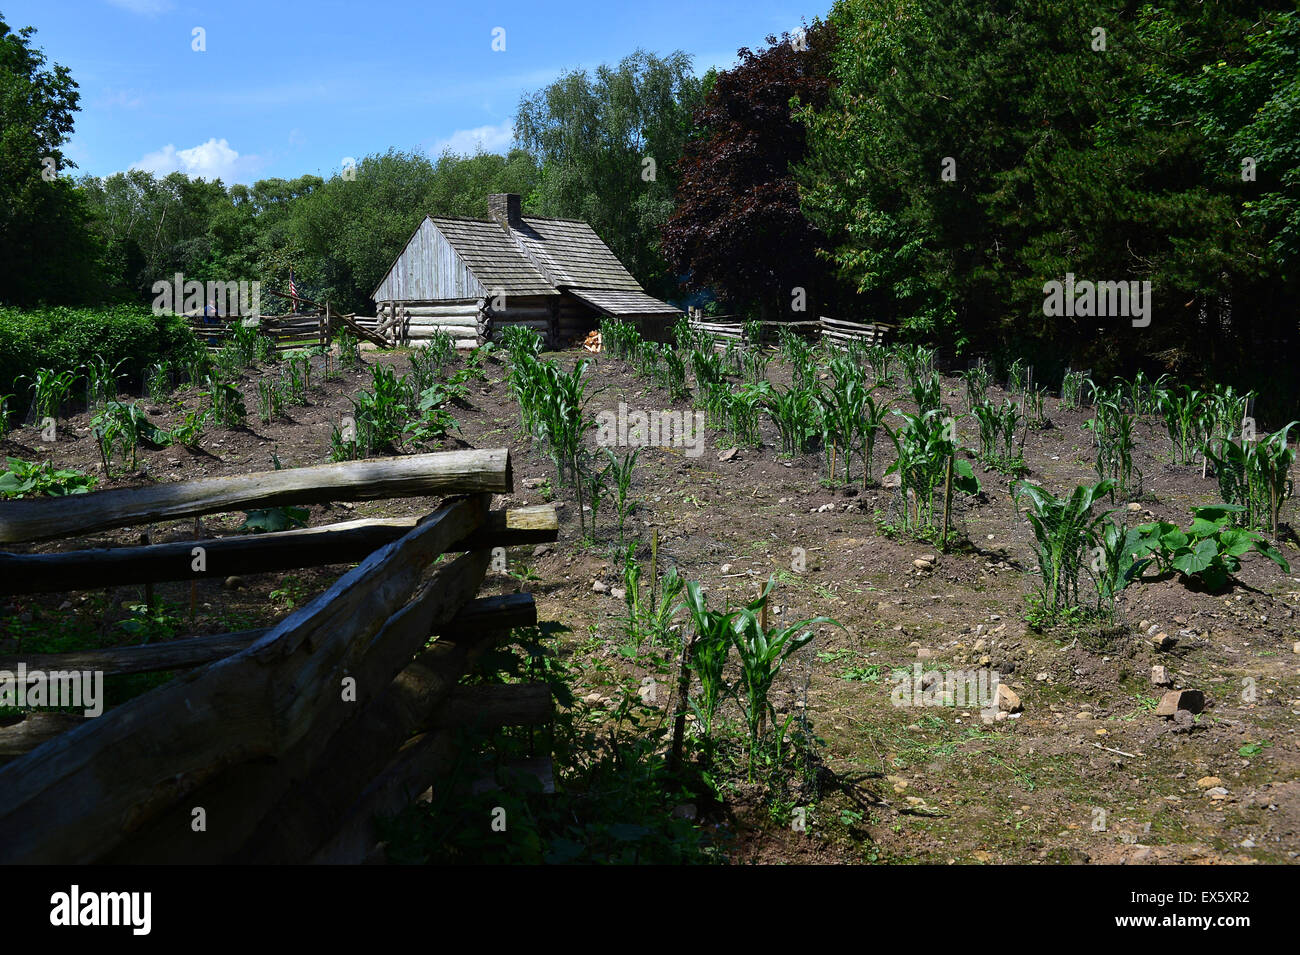 Vegetable crop growing in dry soil, behind a log cabin, at the Ulster American Folk Park. - Stock Image